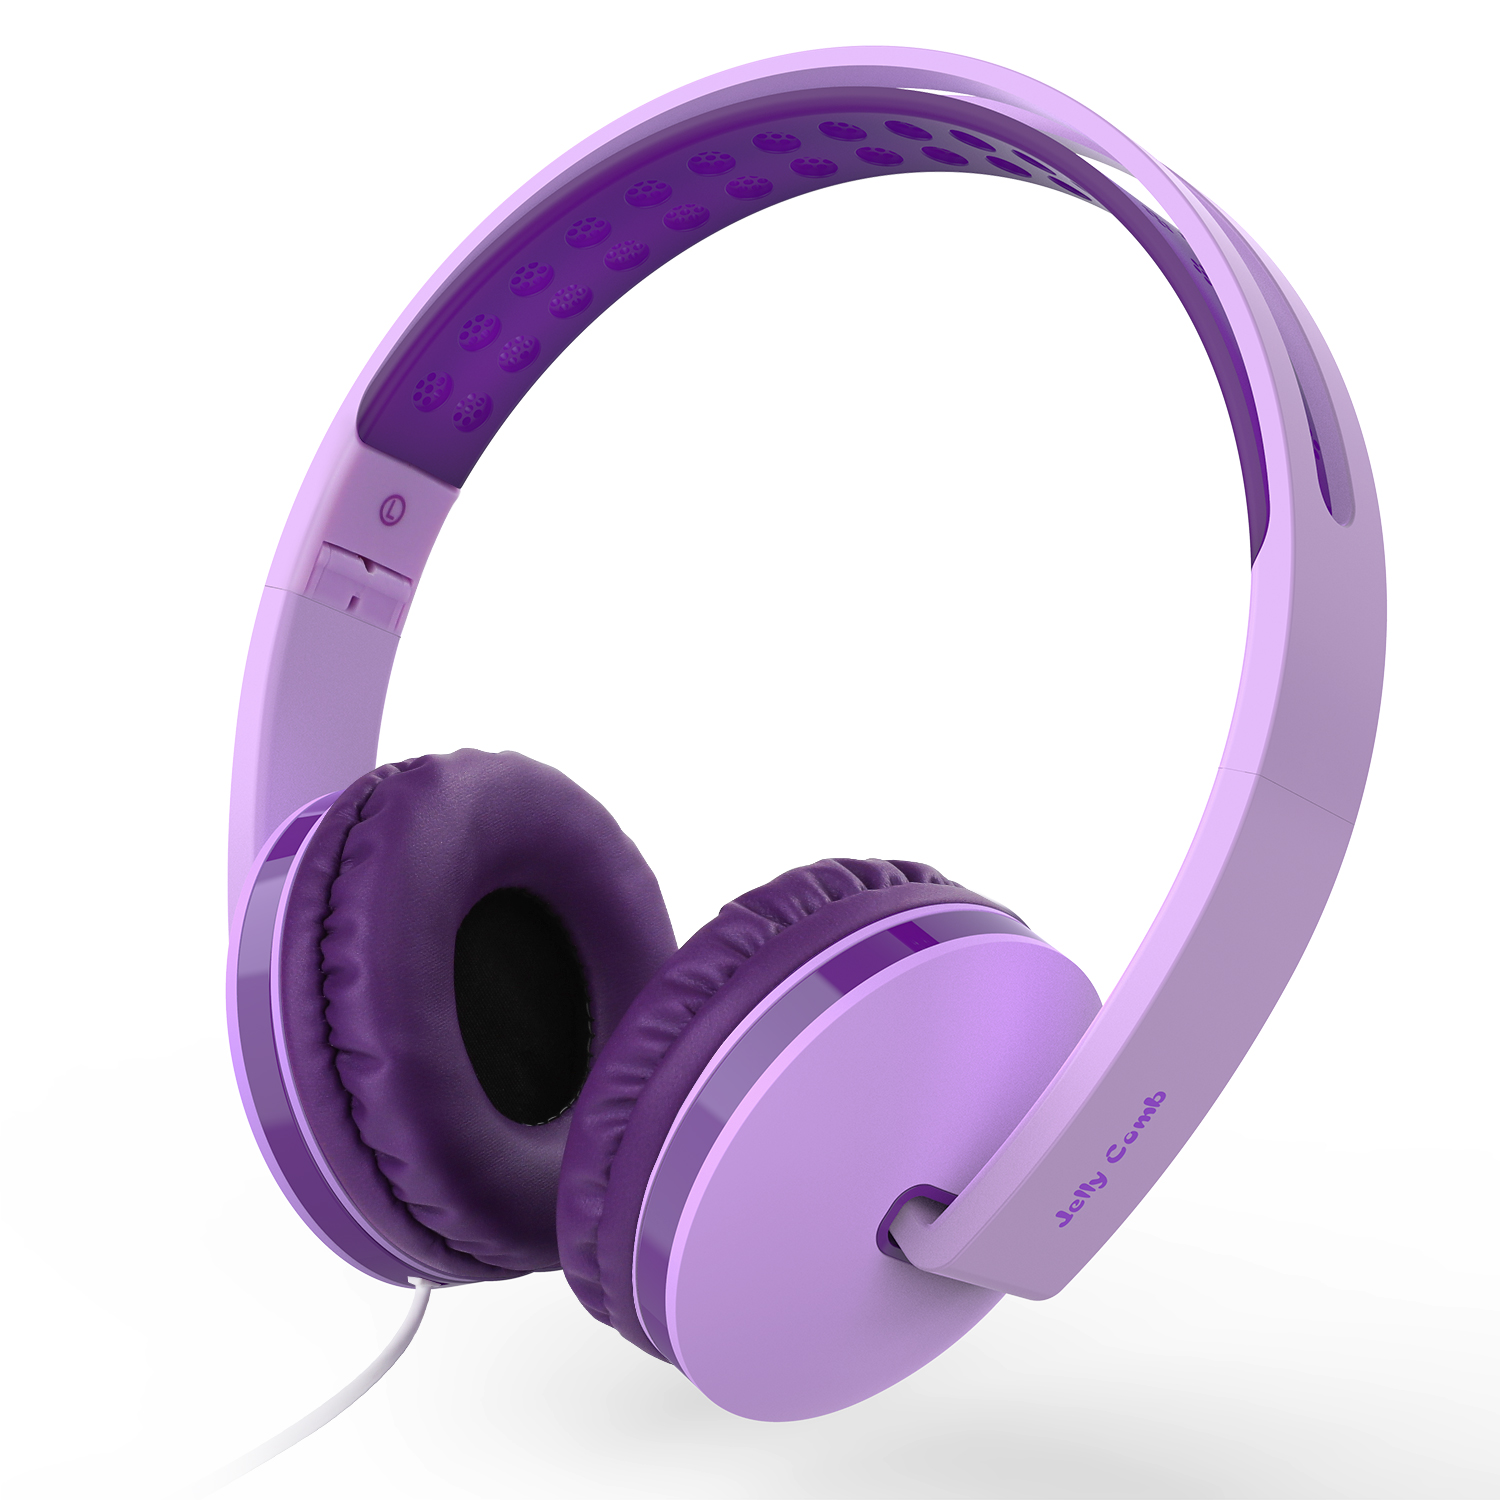 On Ear Headphones with Mic, Kids Headphones,Jelly Comb Foldable Corded Headphones Wired Headsets with Microphone, Volume Control for Cell Phone, Tablet, PC, Laptop, MP3/4, Video Game (Purple)